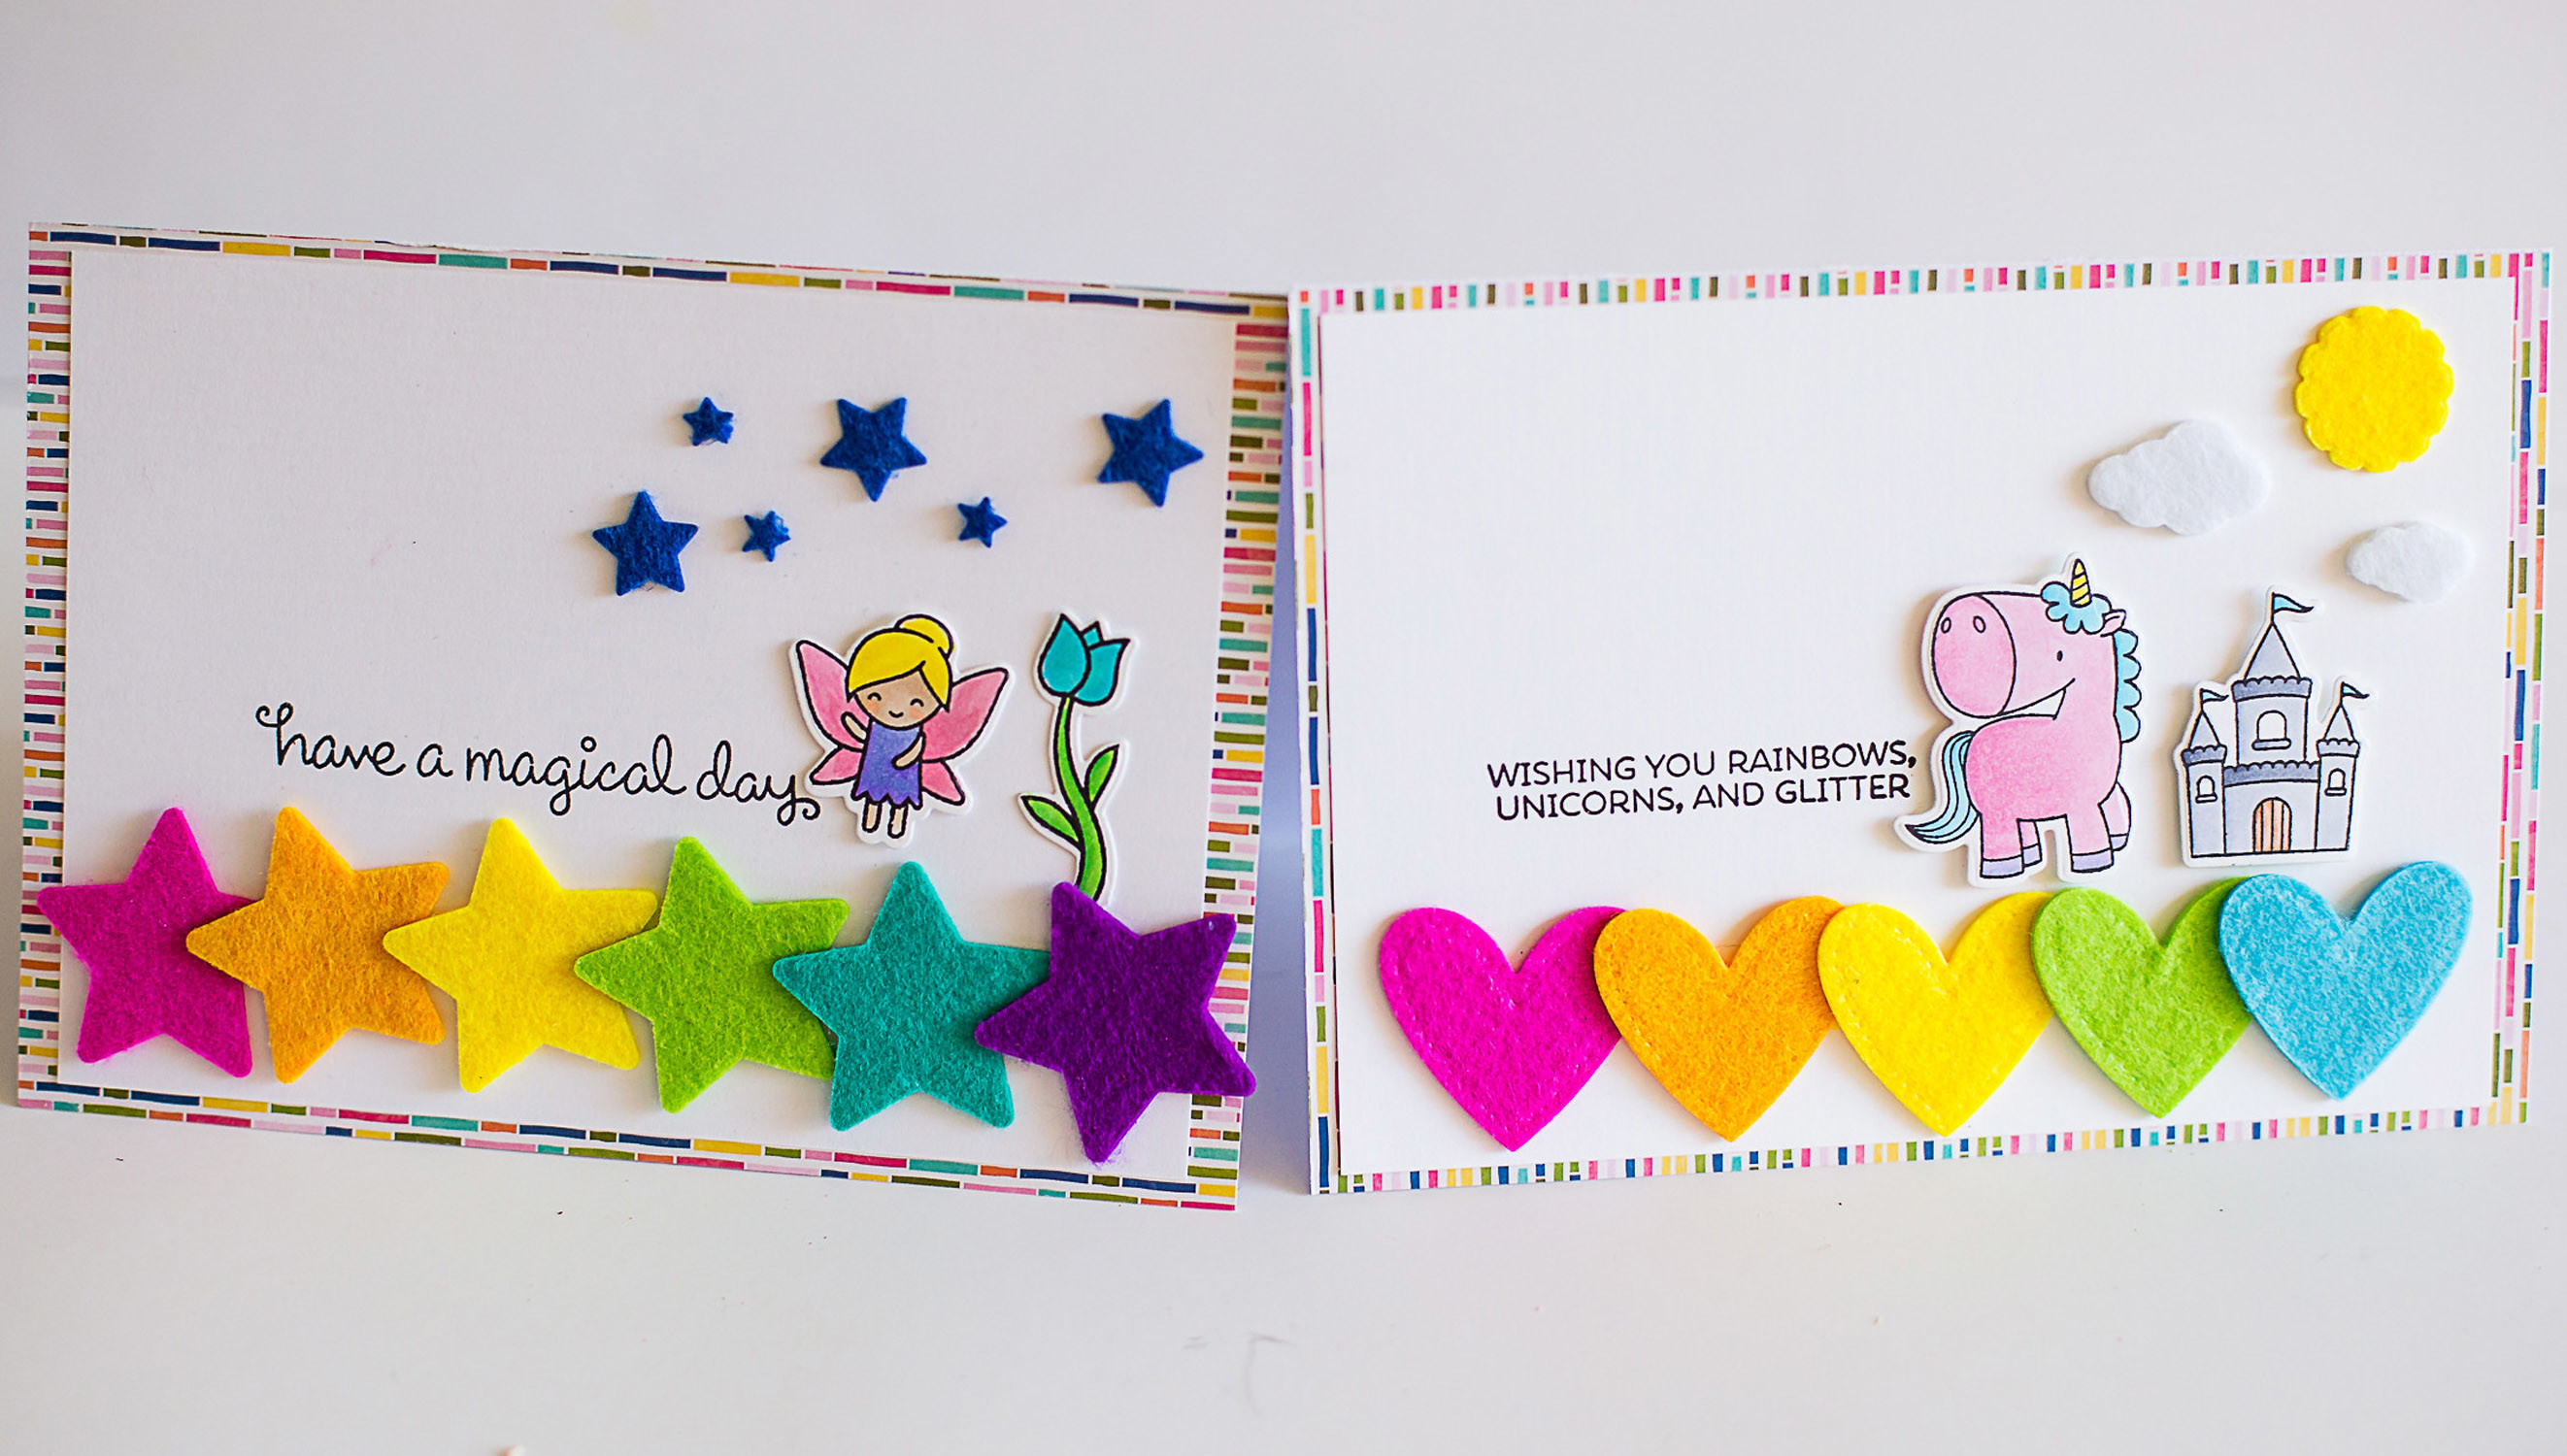 Picture 3 of Wow Factor: Taking Cards to the Next Level at Big Picture Classes